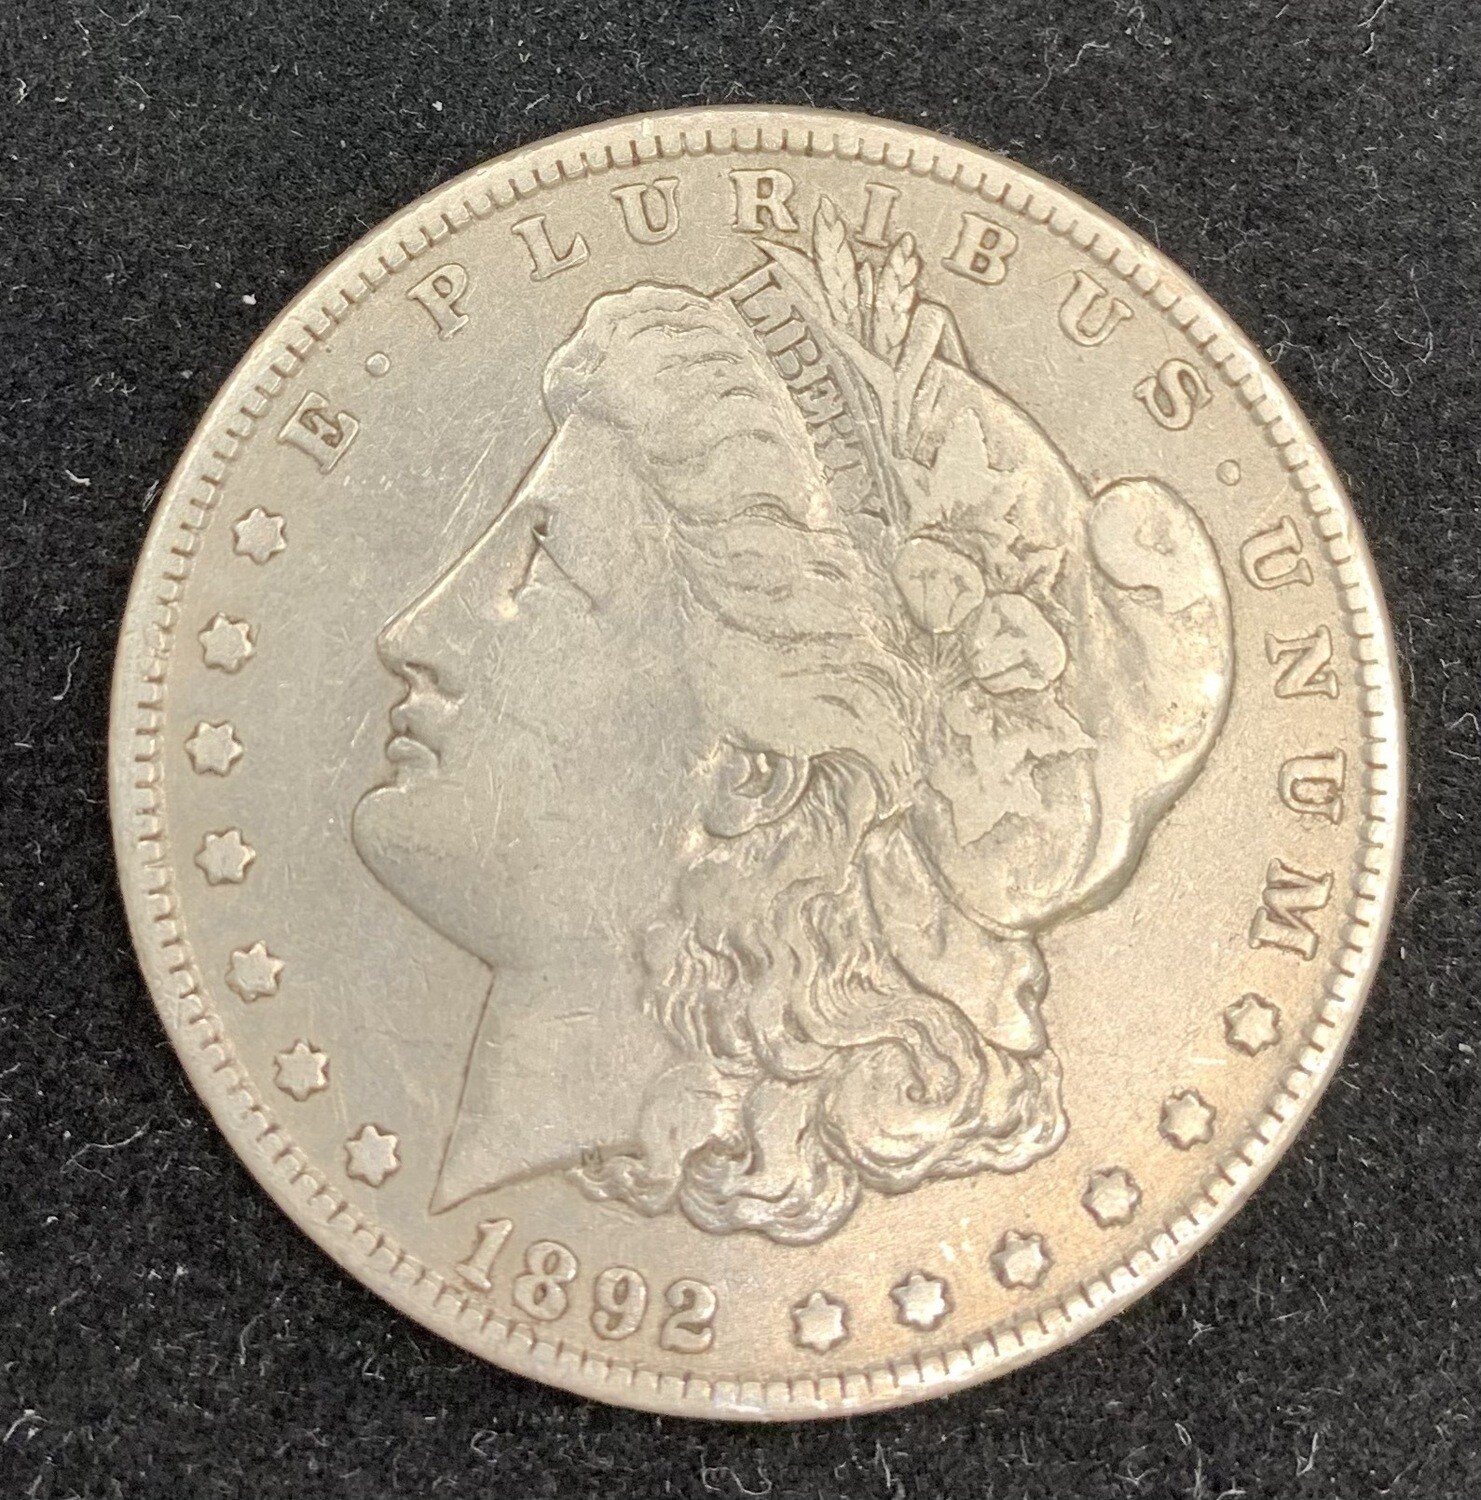 1892 Morgan Silver Dollar - Philadelphia Mint